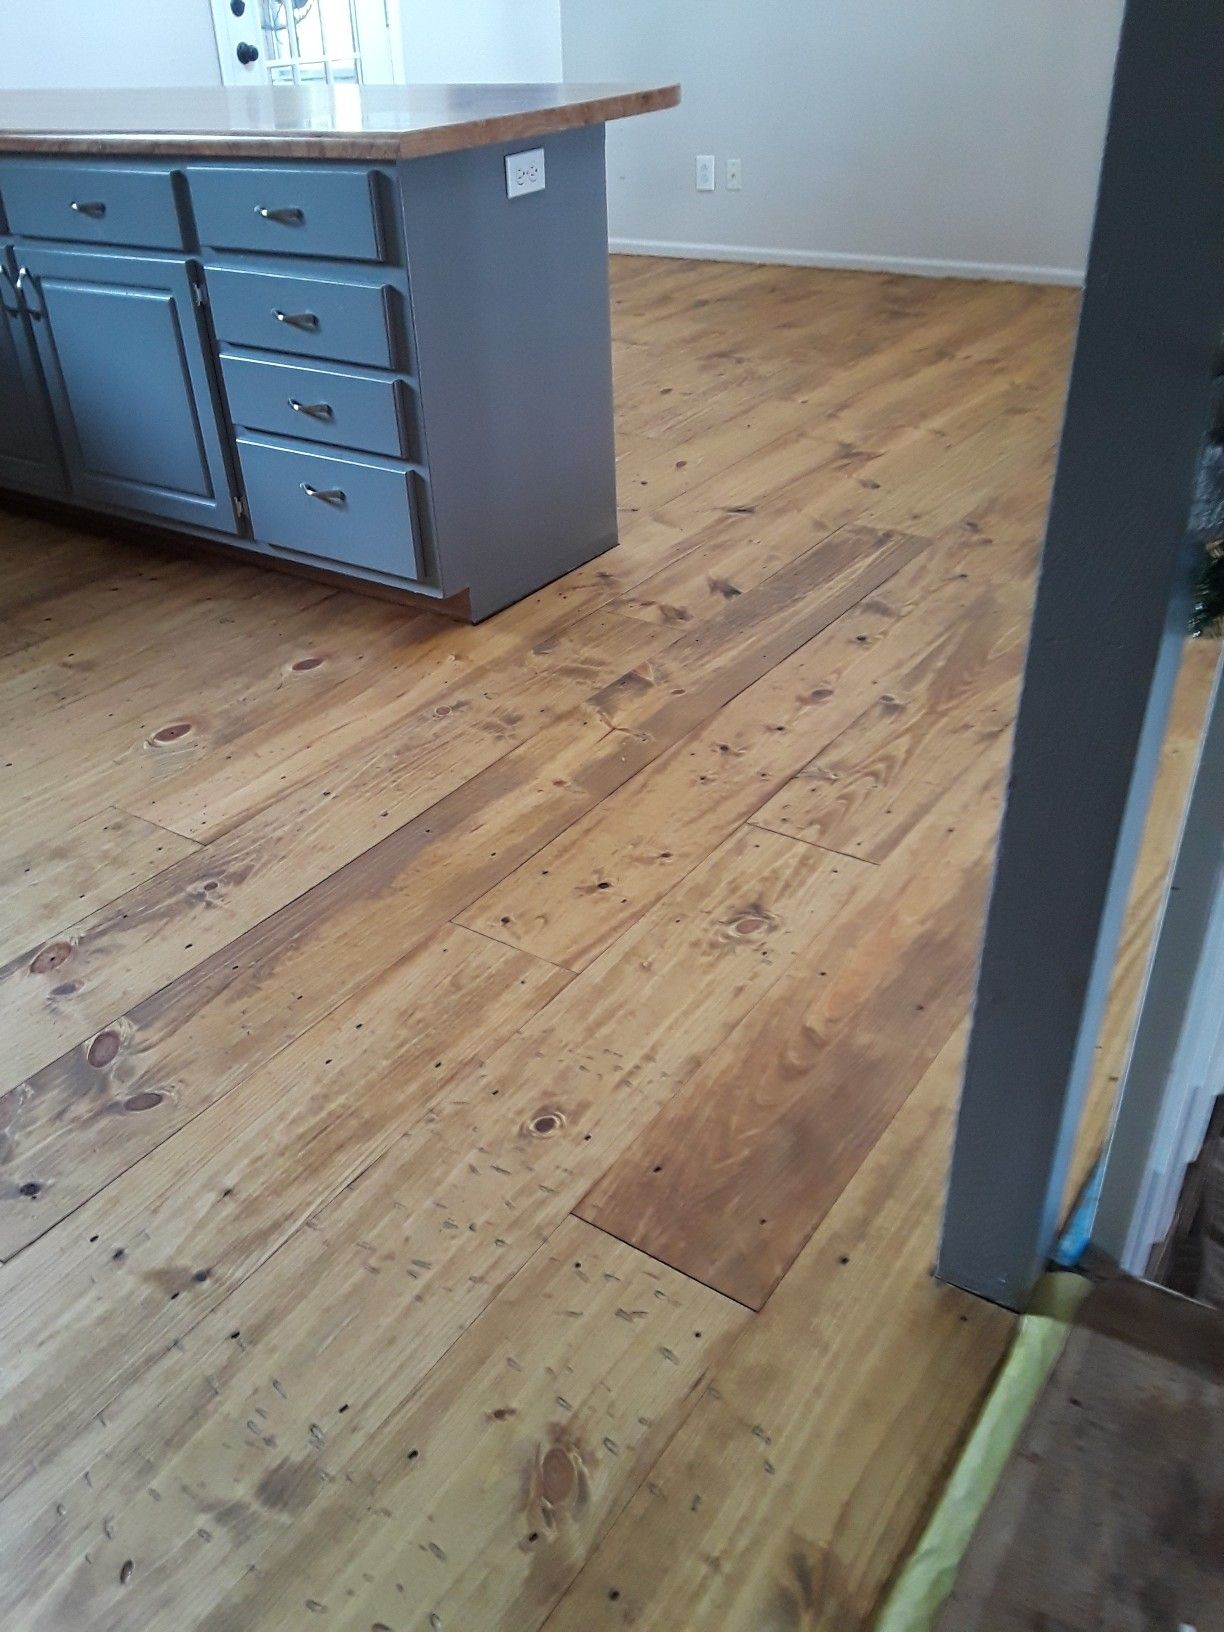 Pin By Ashley Moore On Floor Refinishing In 2020 Hardwood Floors Flooring Wood Floors Wide Plank